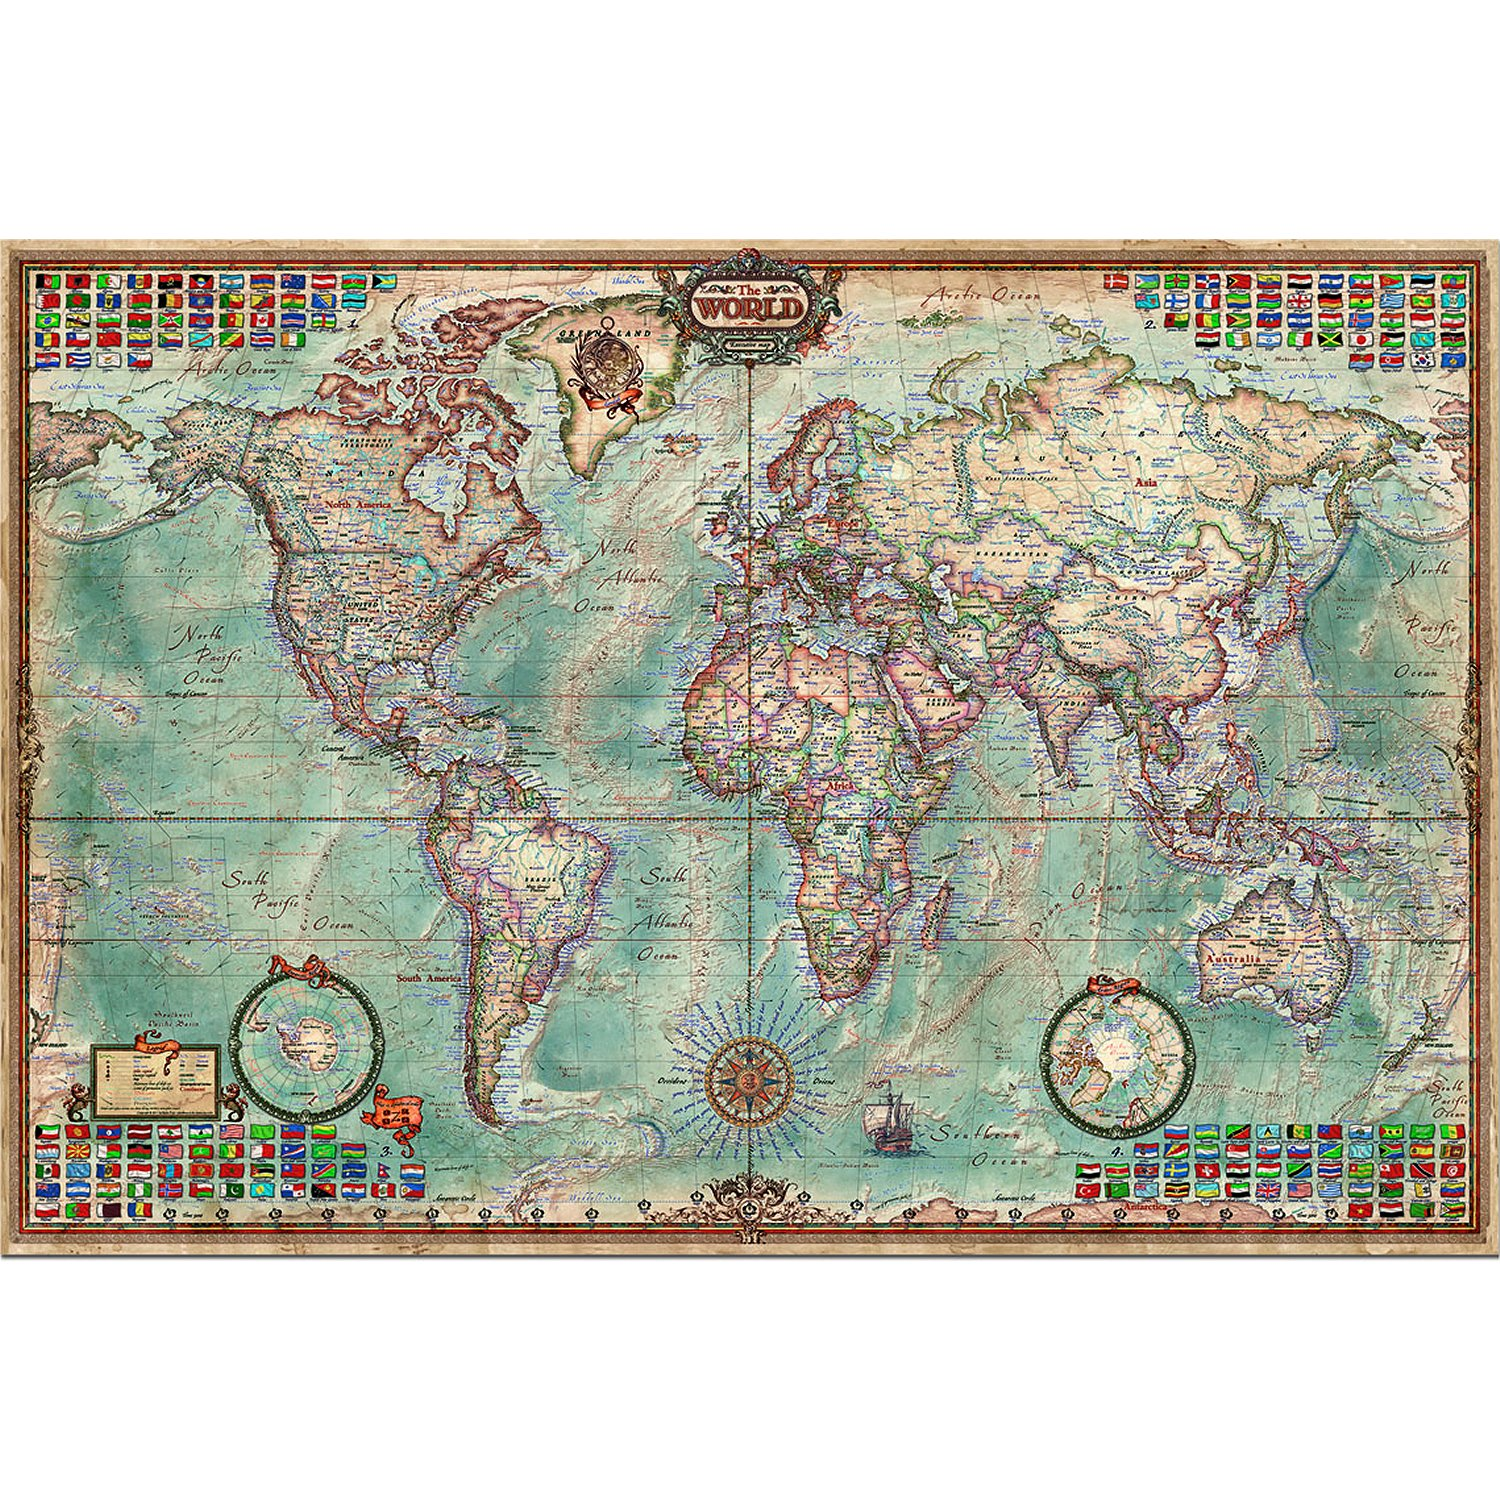 jigsaw puzzle 4000 pieces world map educa 14827 4000 pieces jigsaw puzzles world maps and. Black Bedroom Furniture Sets. Home Design Ideas